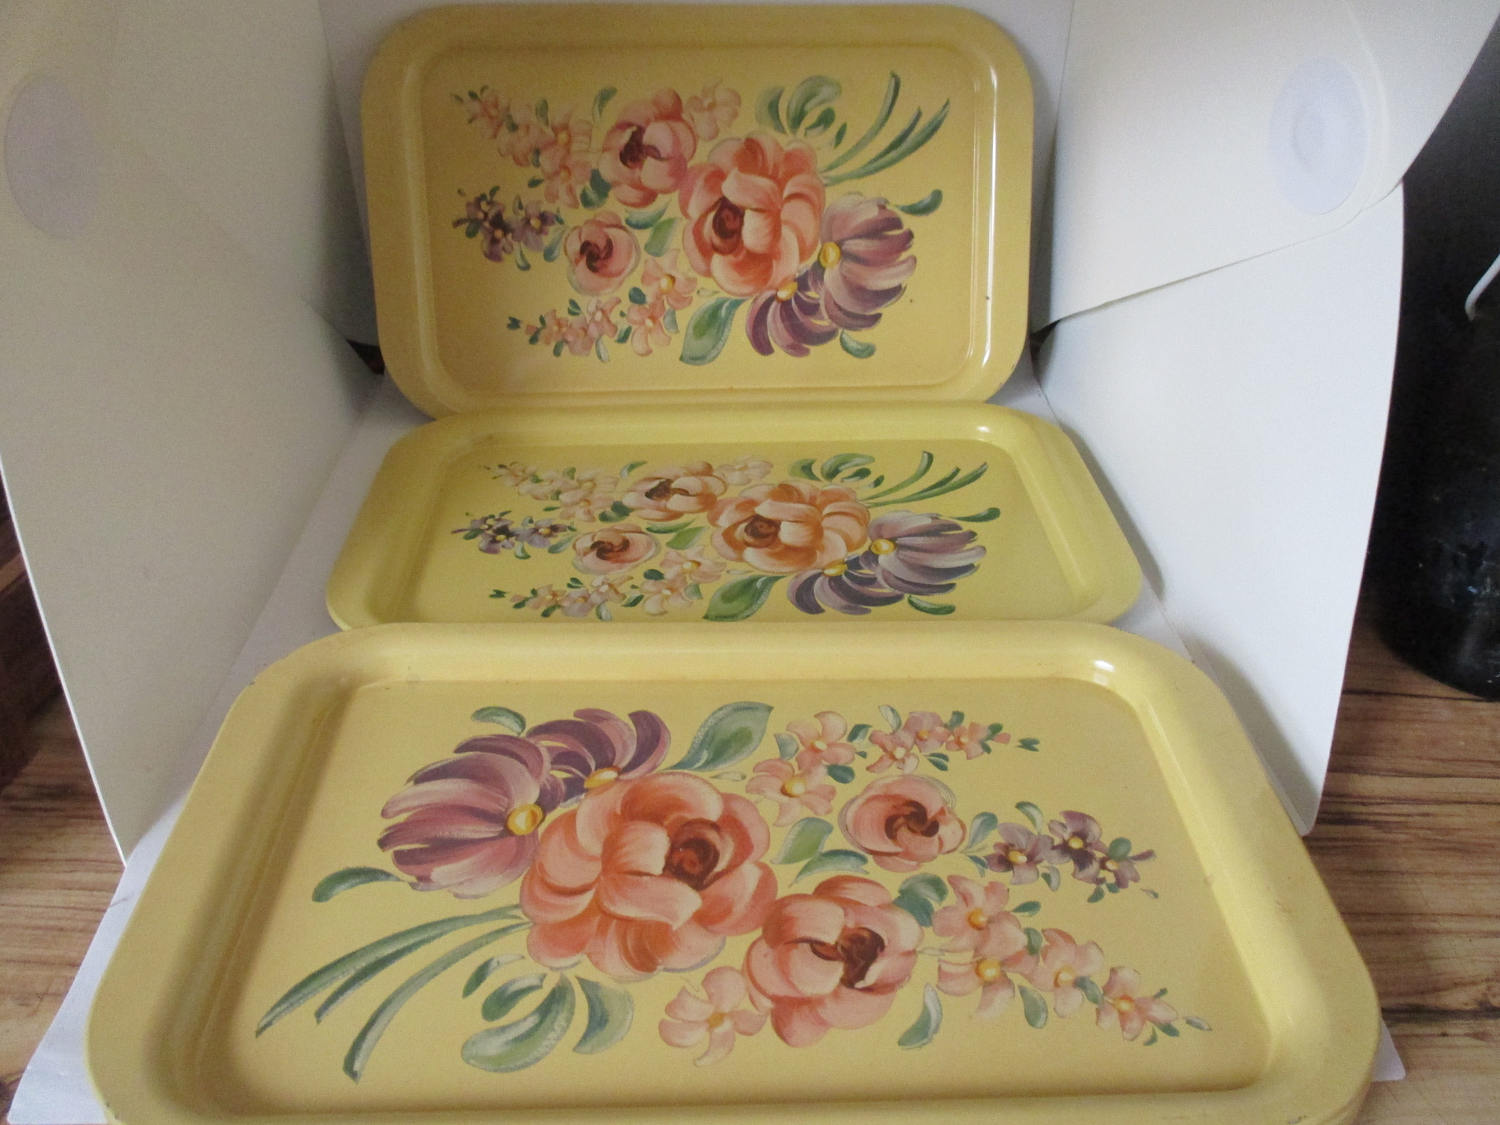 Charmant Set Of 6 Metal Serving Trays Floral 1950u0027s Dining Serving Kitchen Dining  Collectible Farmhouse Mid Century